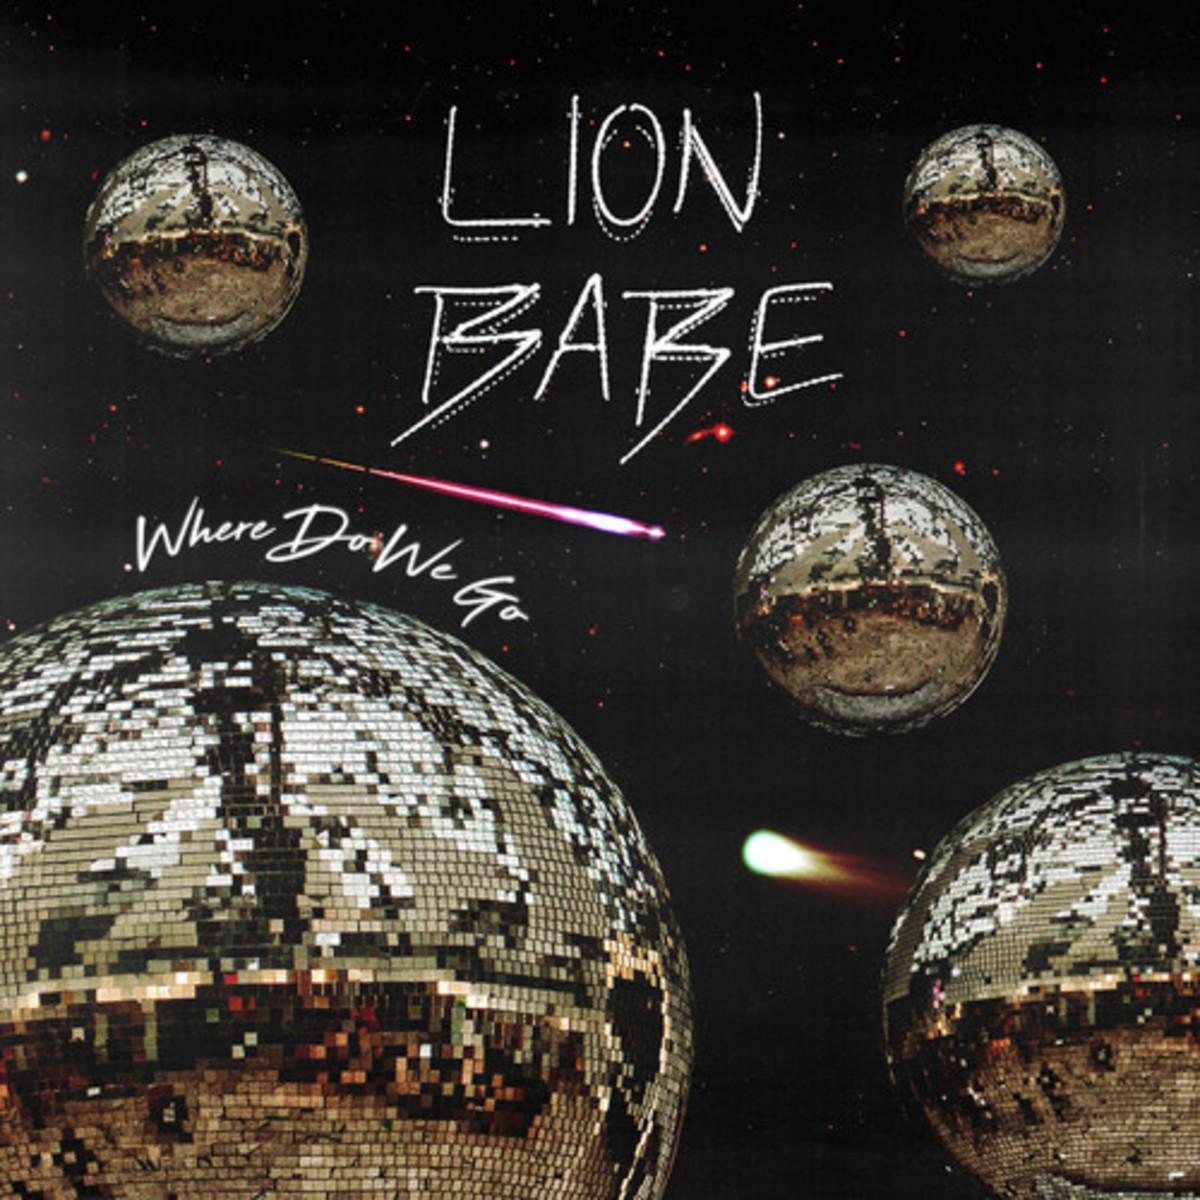 lion-babe-where-do-we-go.jpg